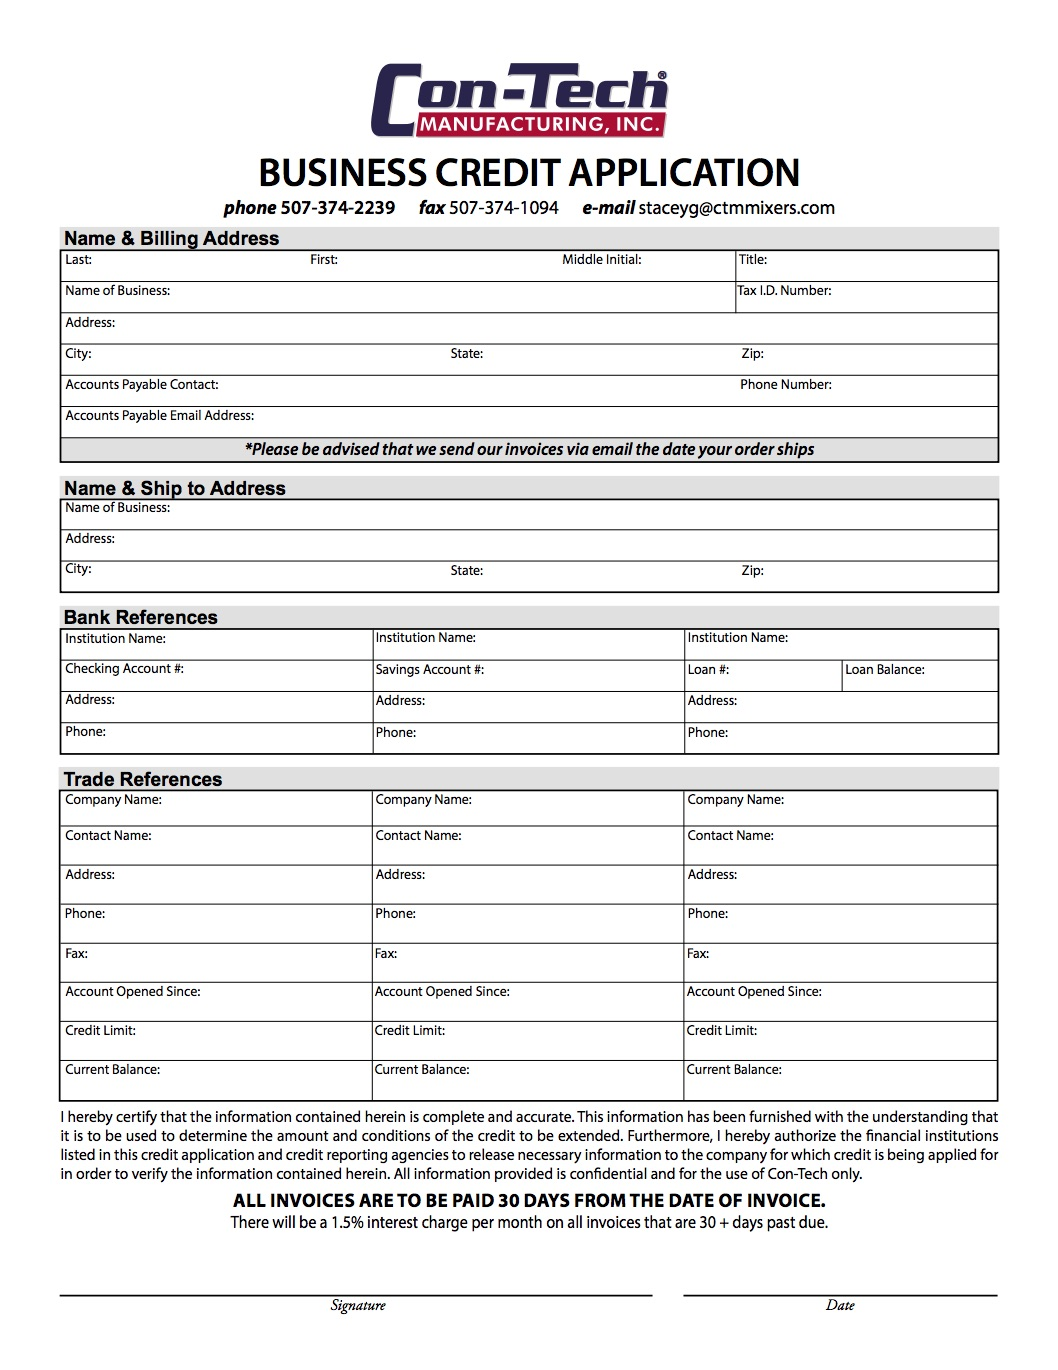 Con-Tech Credit Application